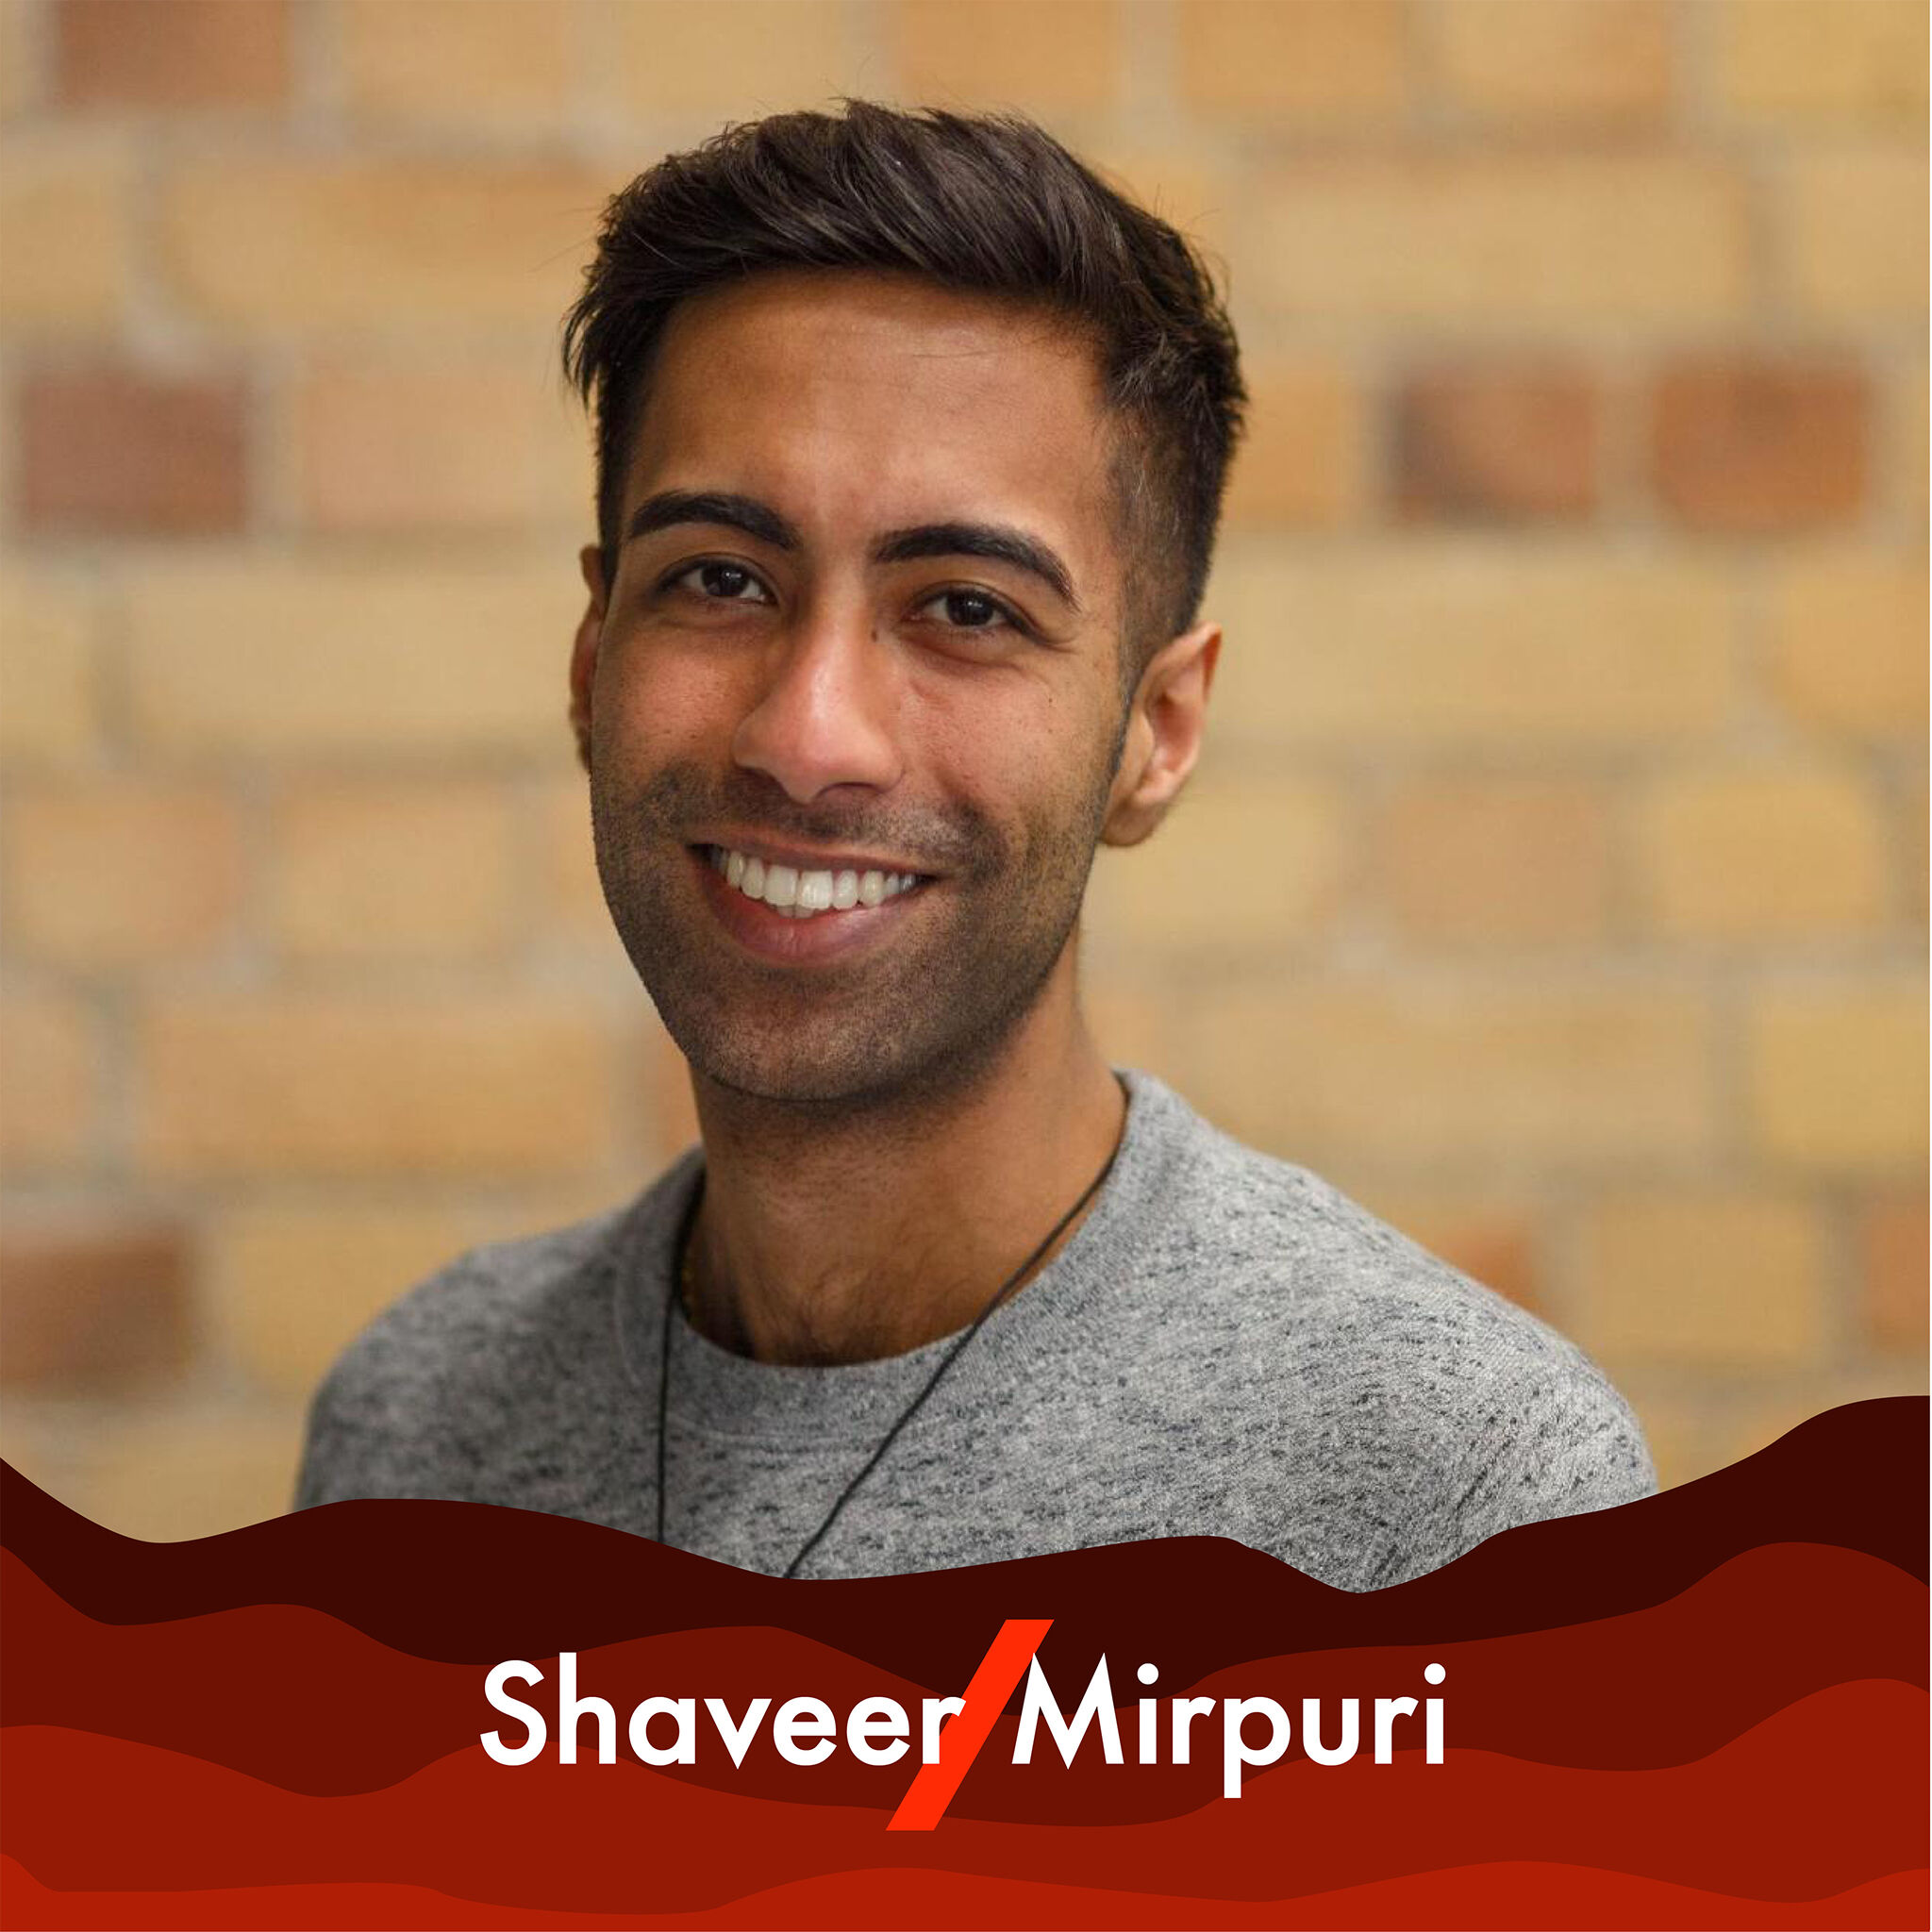 A picture of Shaveer Mirpuri